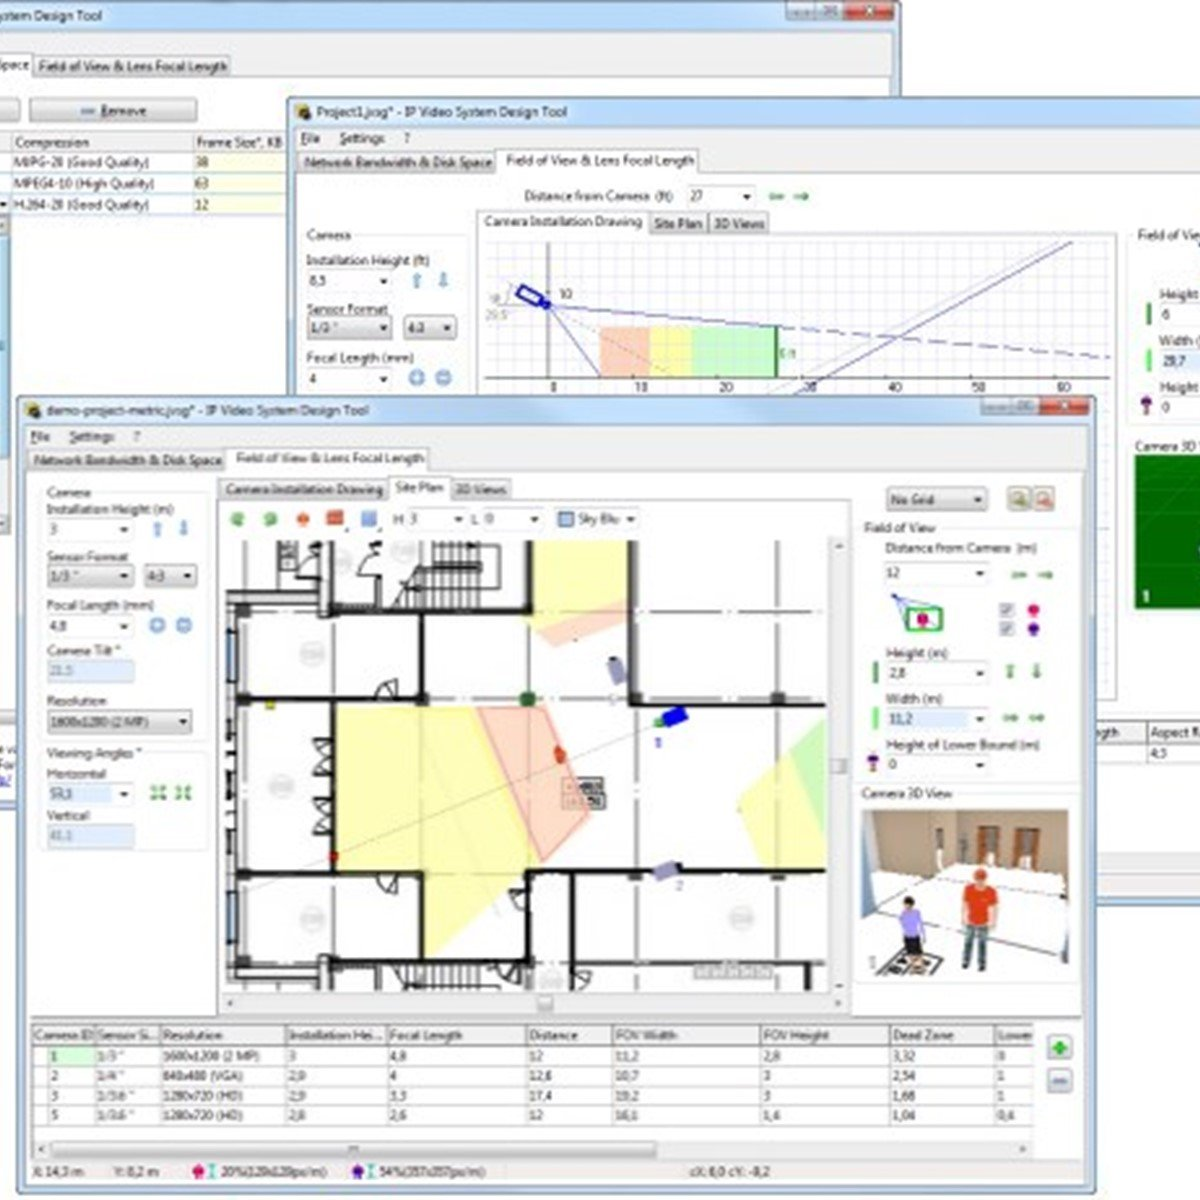 Ip video system design tool alternatives and similar for Program design tools